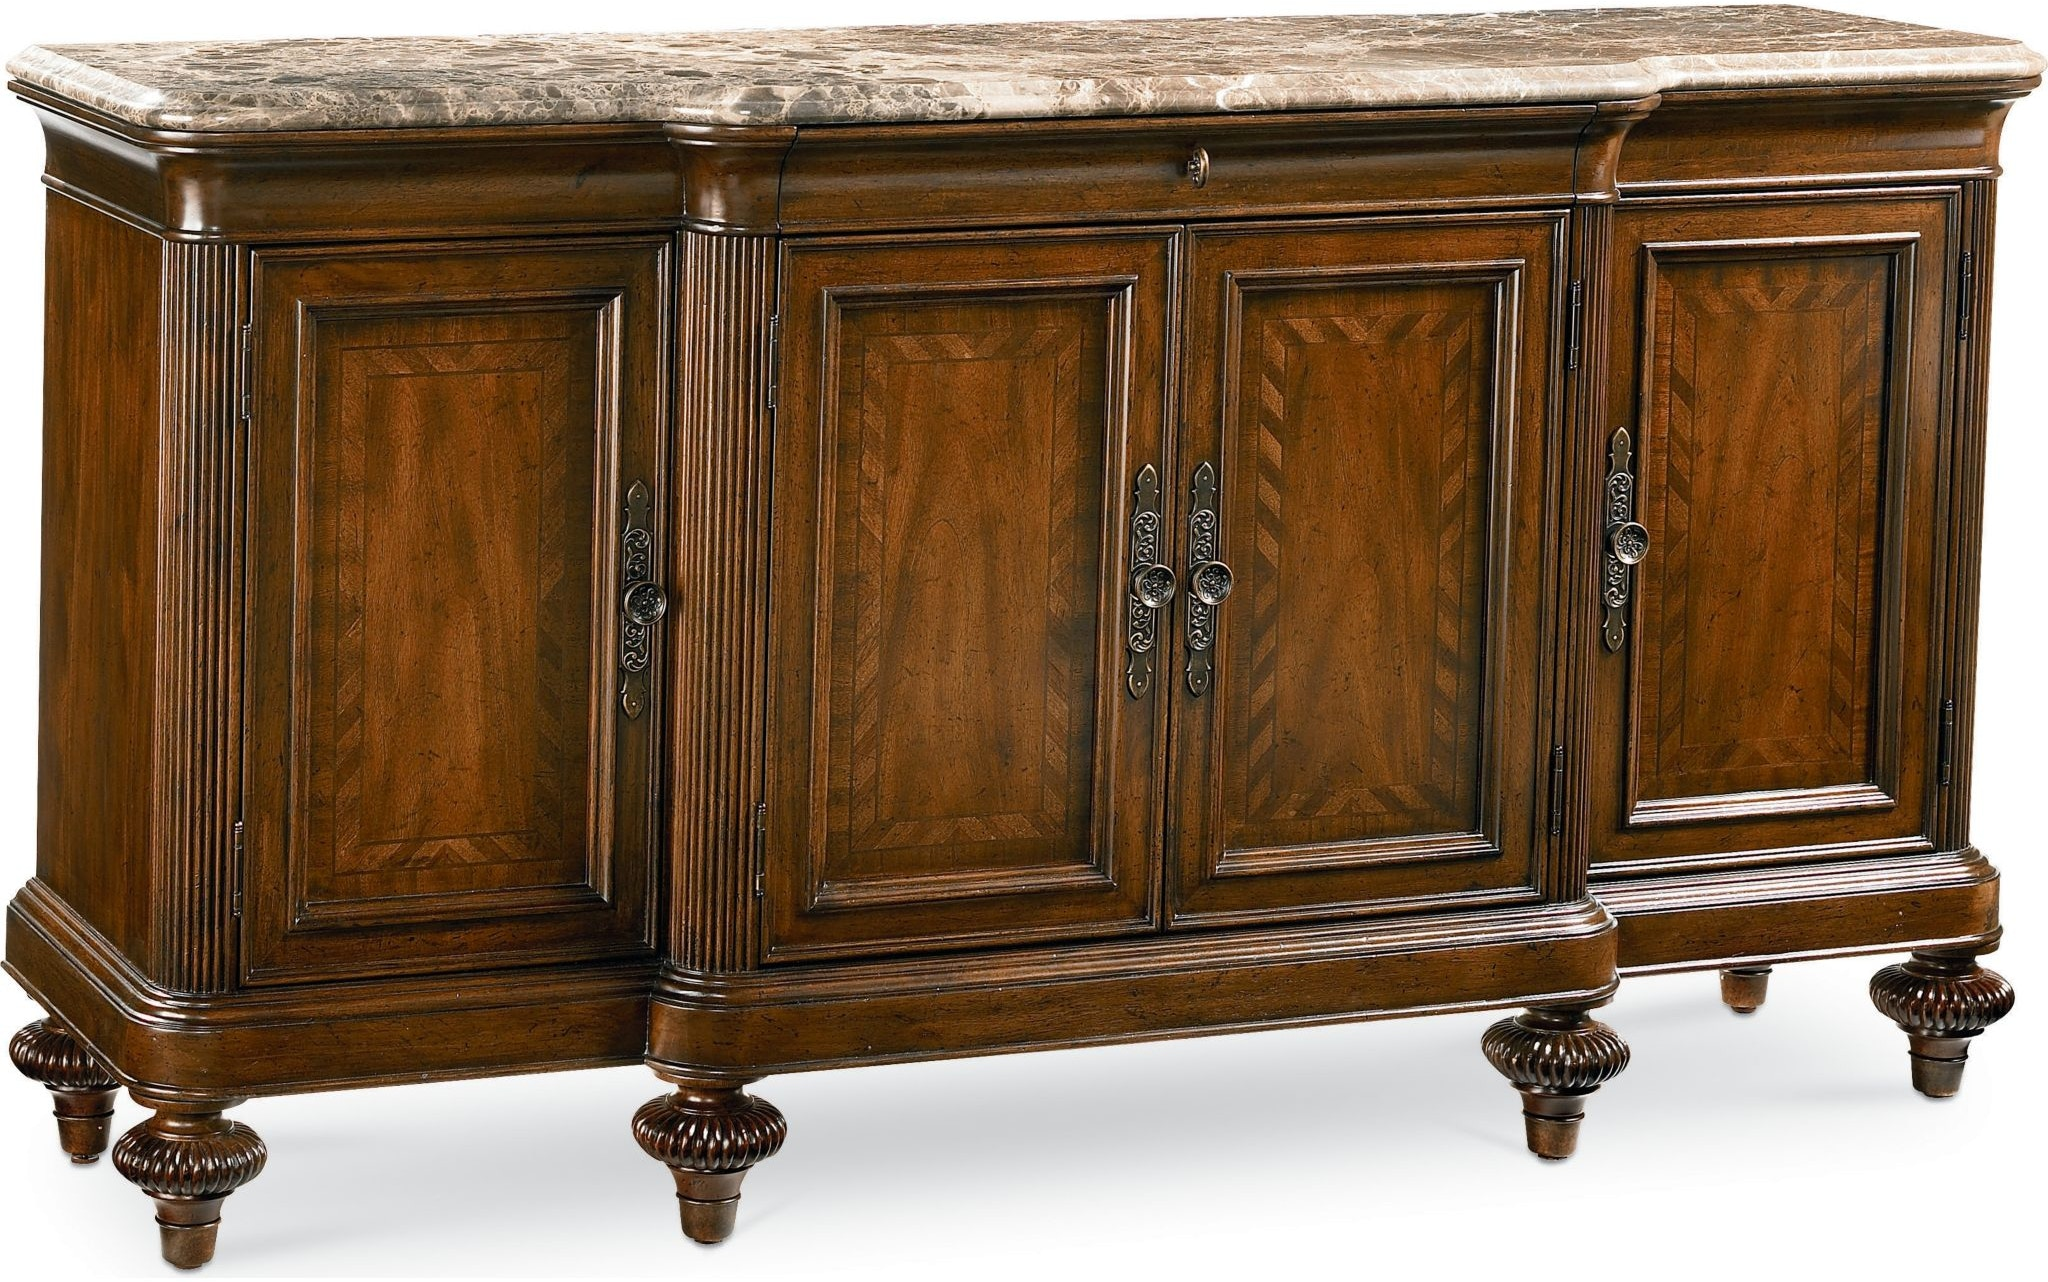 Thomasville Dining Room Preserve Buffet 46221 135 Bacons  : 46221 135 from www.baconsfurniture.com size 1024 x 768 jpeg 103kB